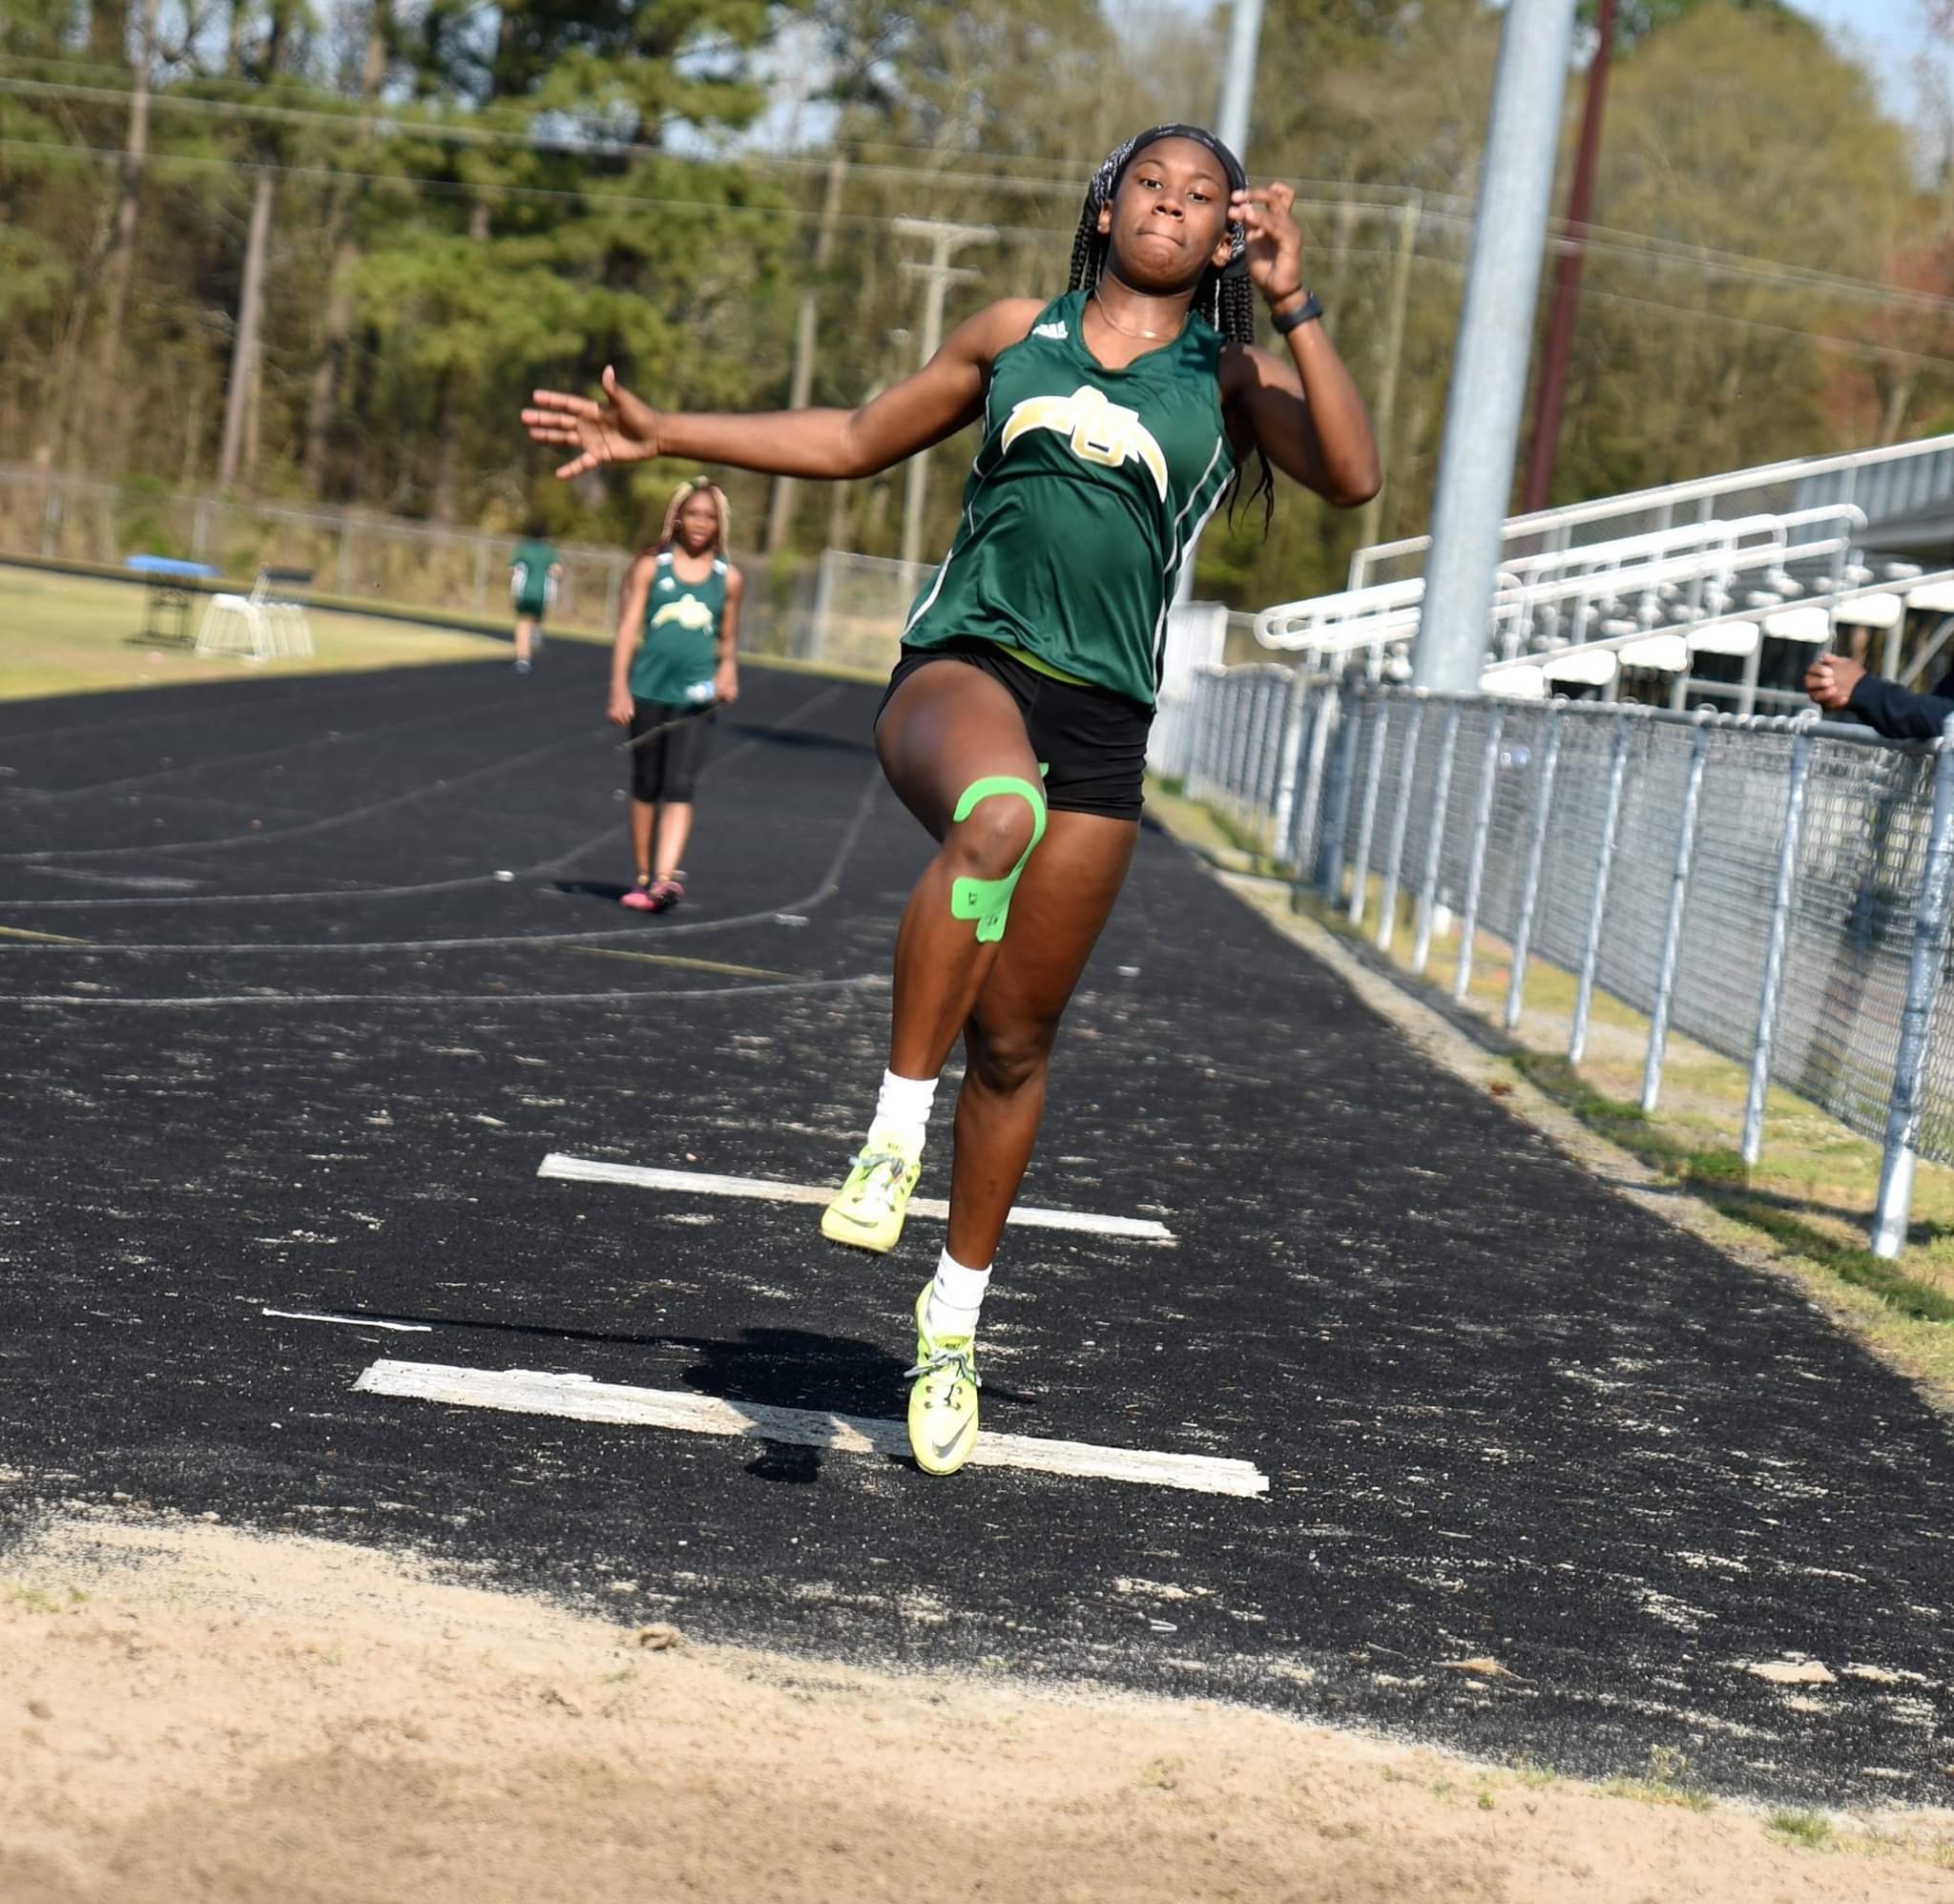 Ayden-Grifton's Alexia Bryant prepares for her jump in Thursday's conference track and field meet against Greene Central. Photo by William 'Bud' Hardy / Neuse News